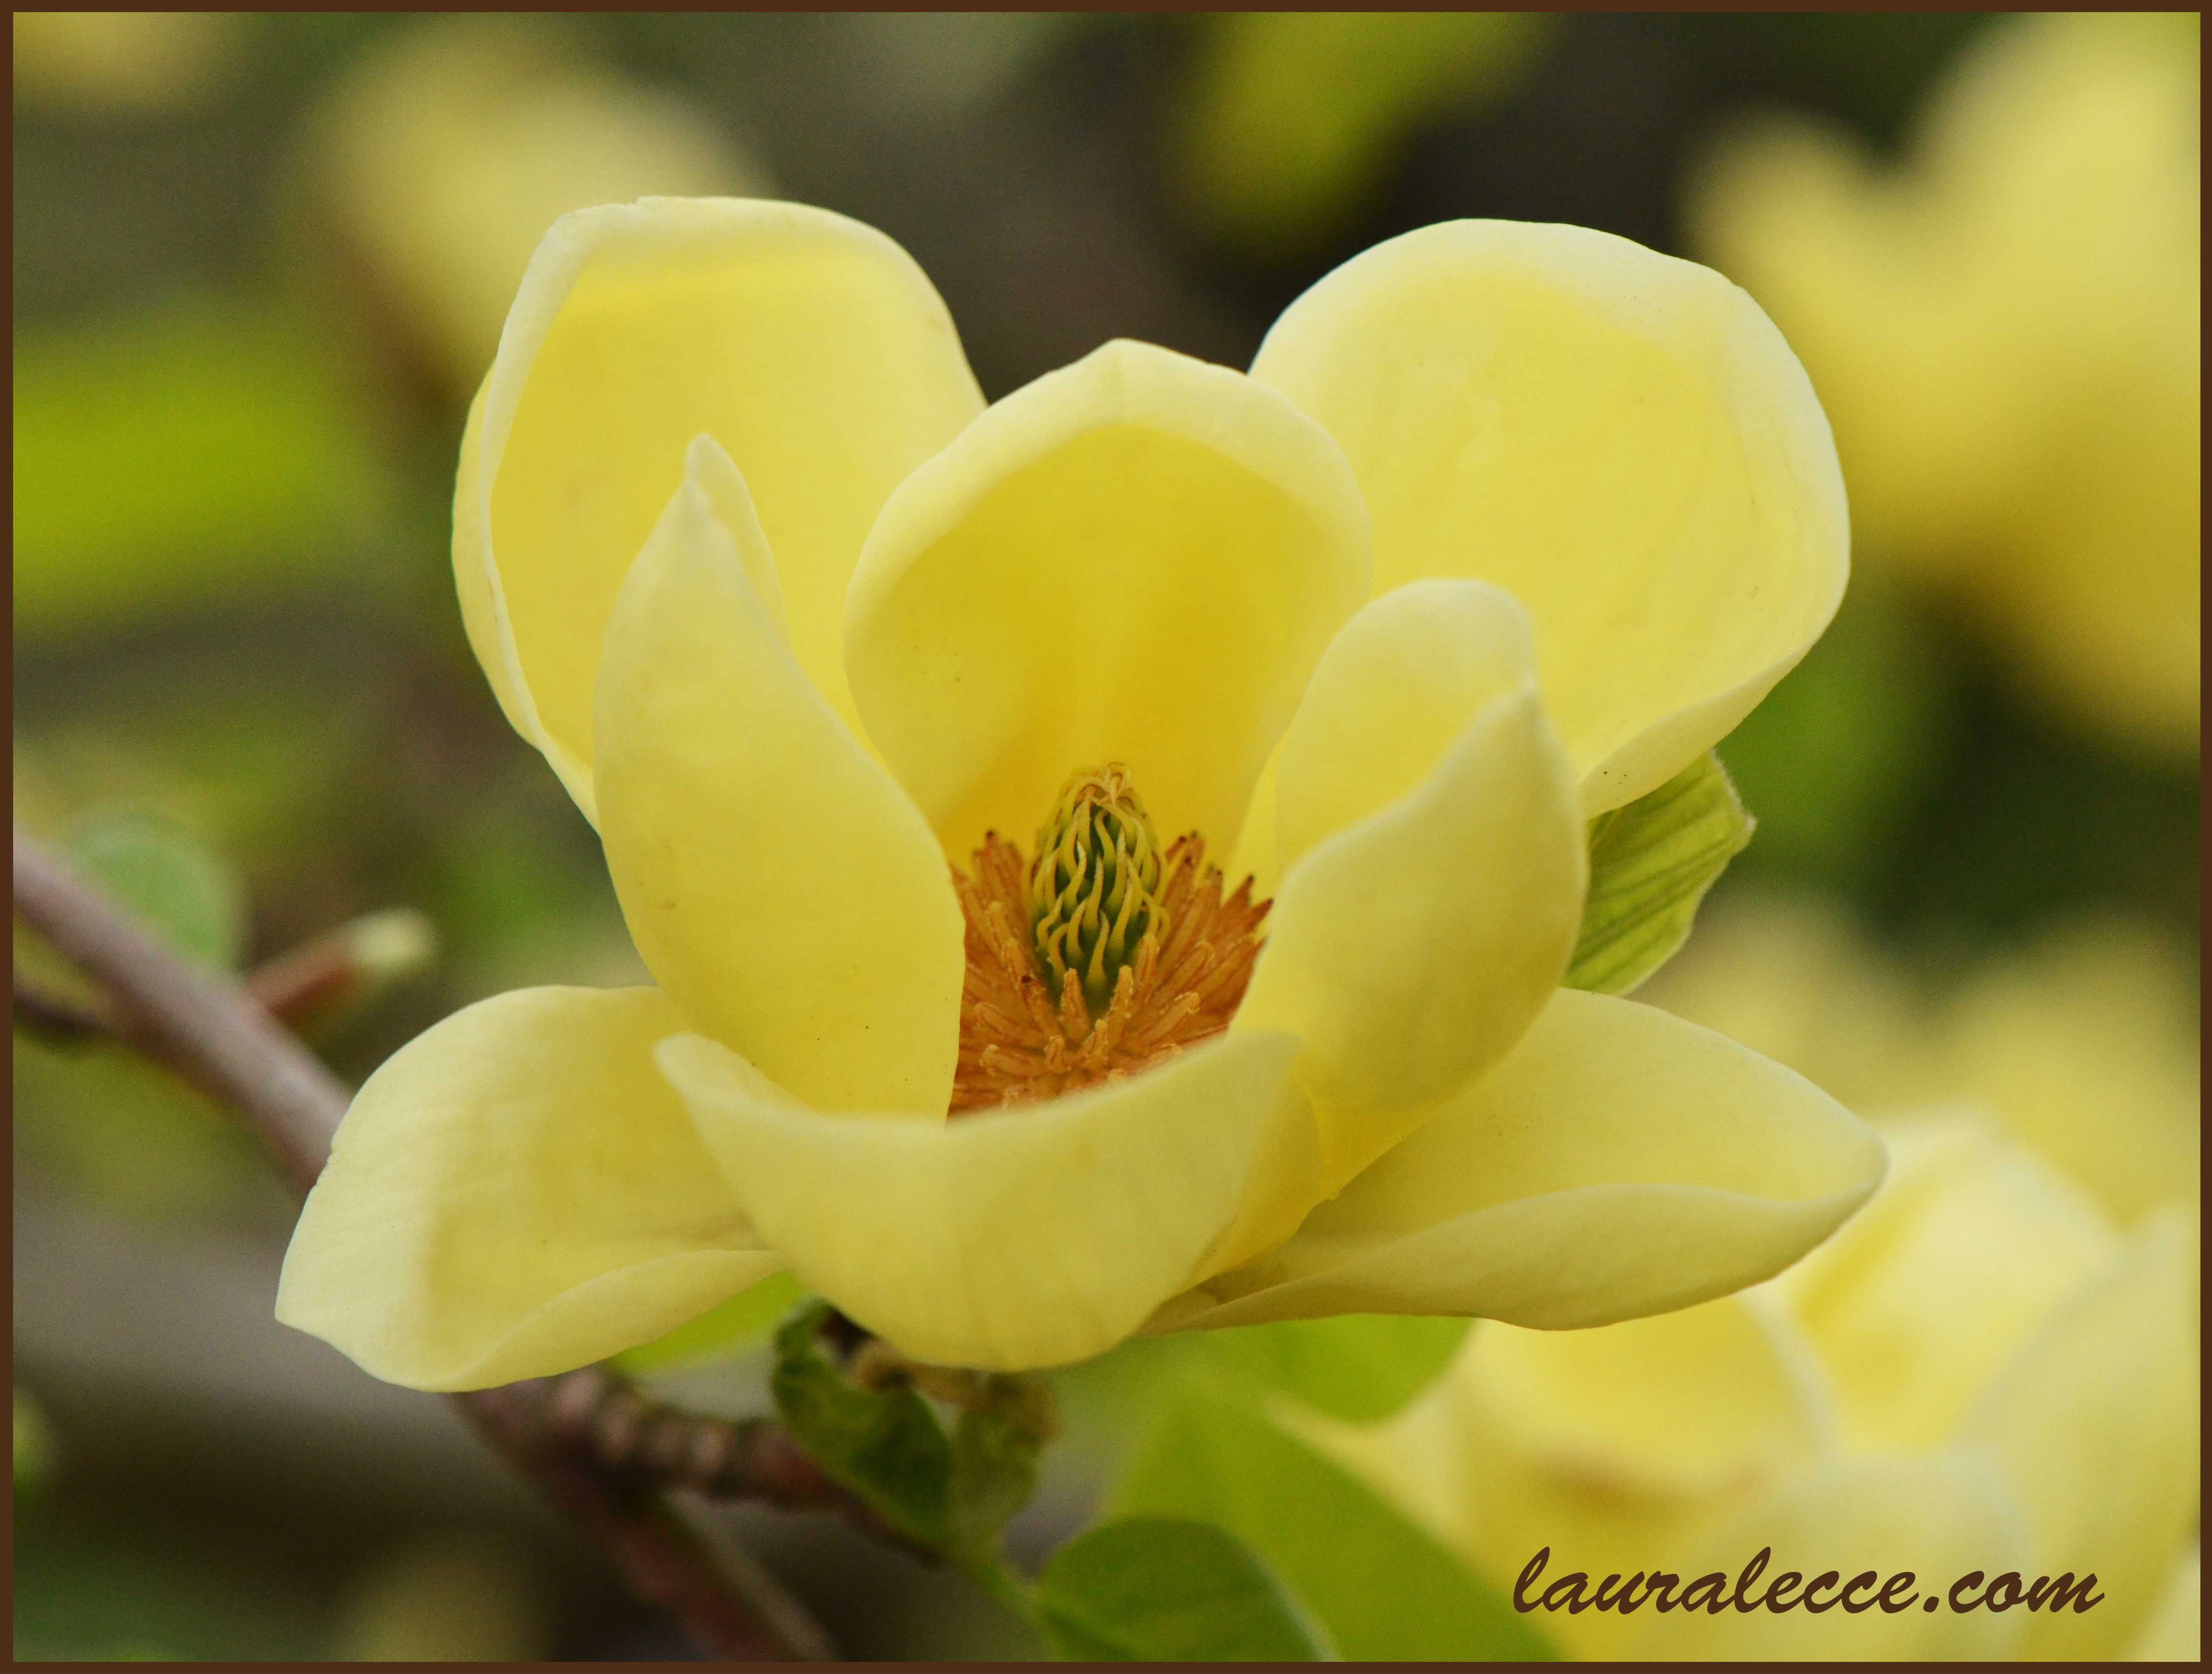 Friday Flower Yellow Magnolia Laura Lecces Art And Photography